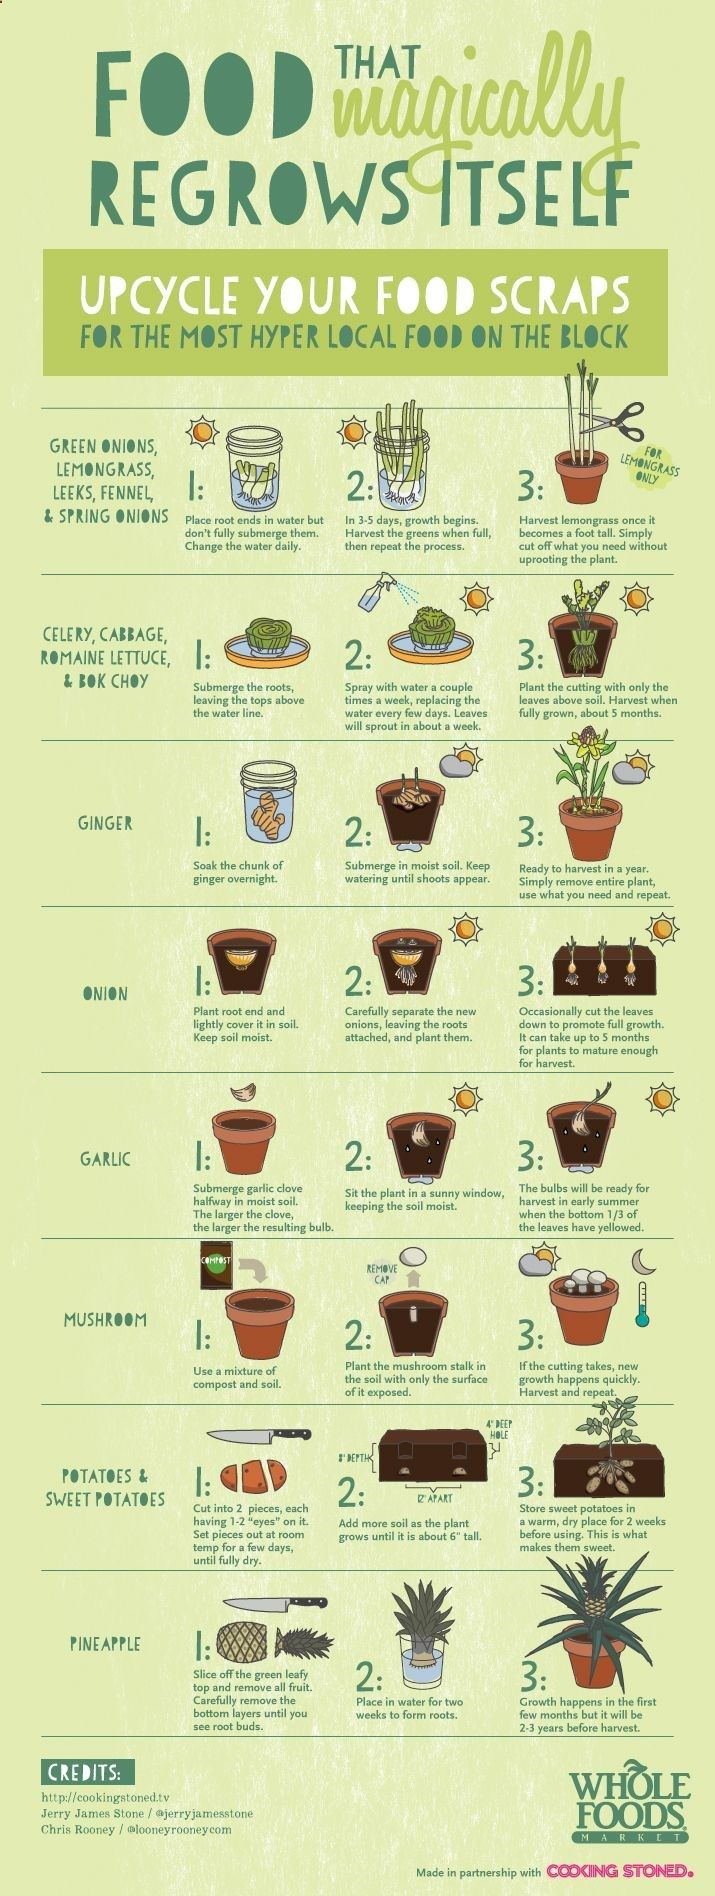 Food that magically regrow itself!